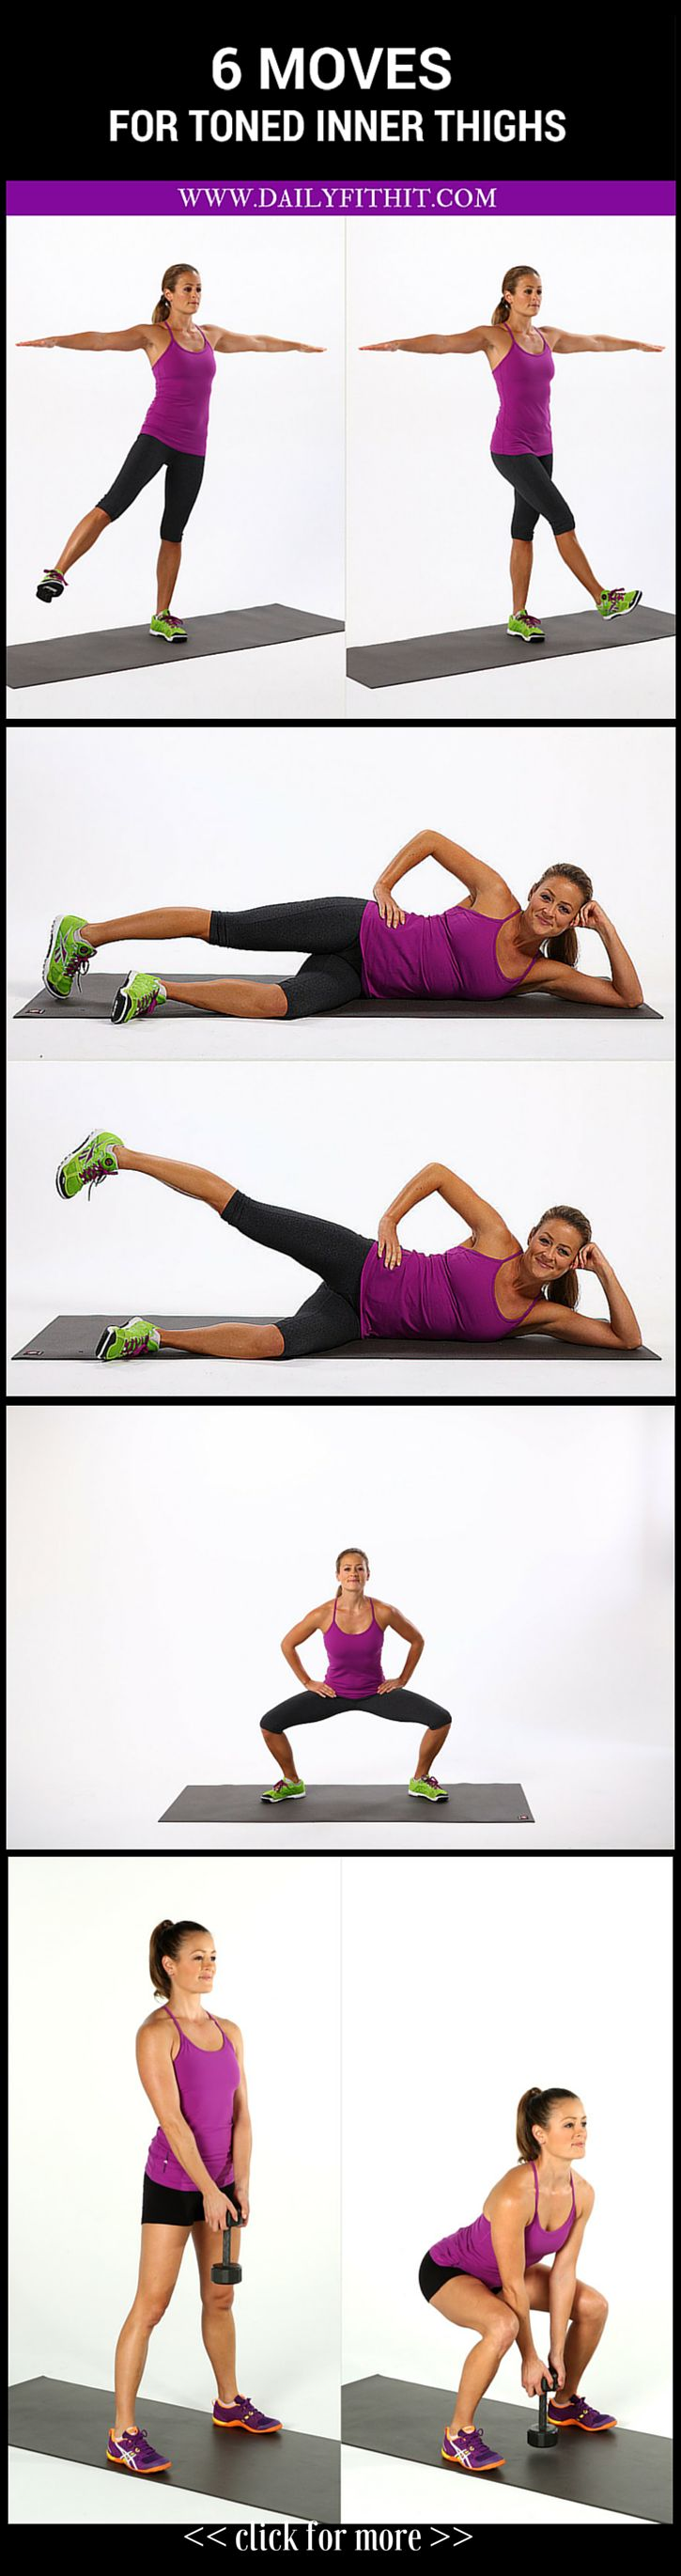 6 Moves for Terrifically Toned Inner Thighs #Workout #Fitness #WeightLoss Image…